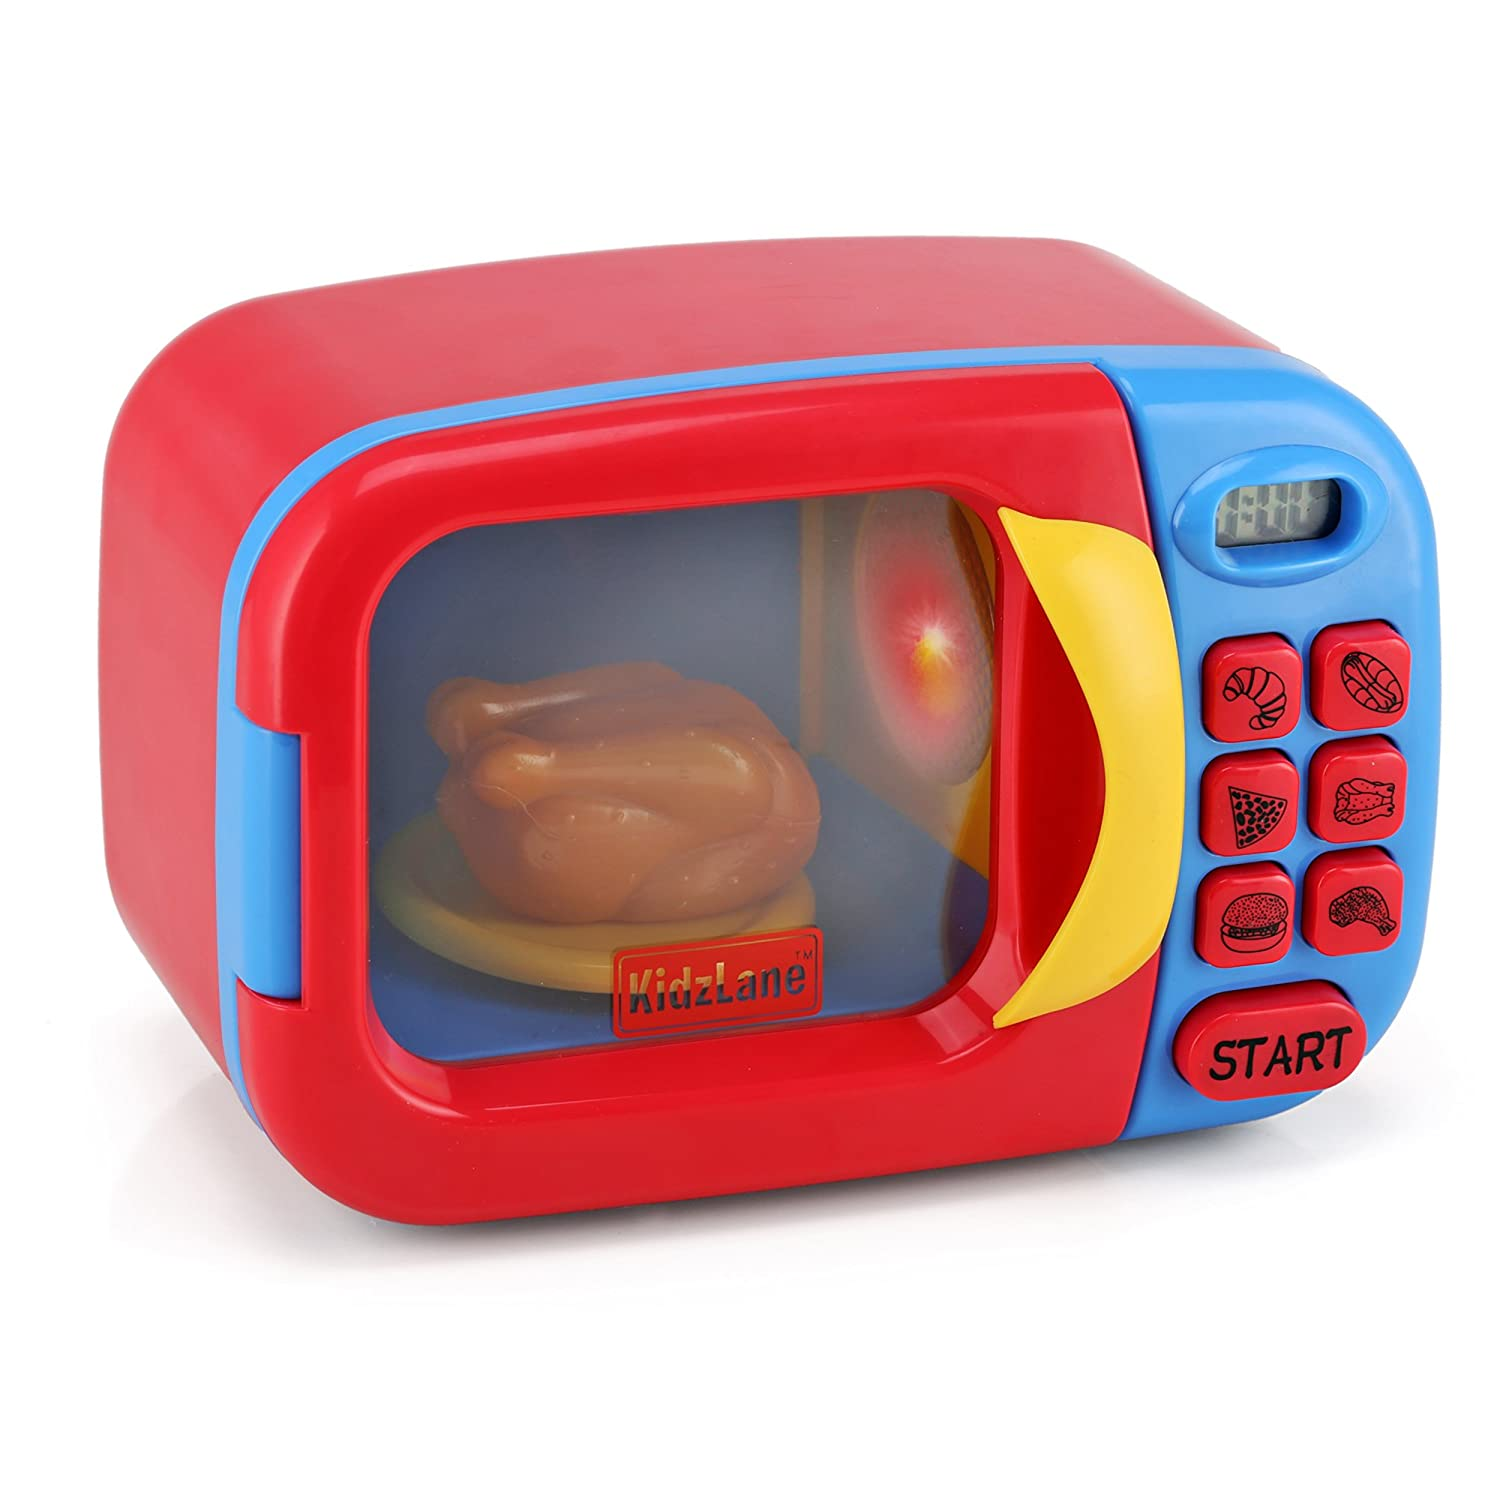 Kidzlane Microwave Oven Toy for Kids Pretend Play Kitchen